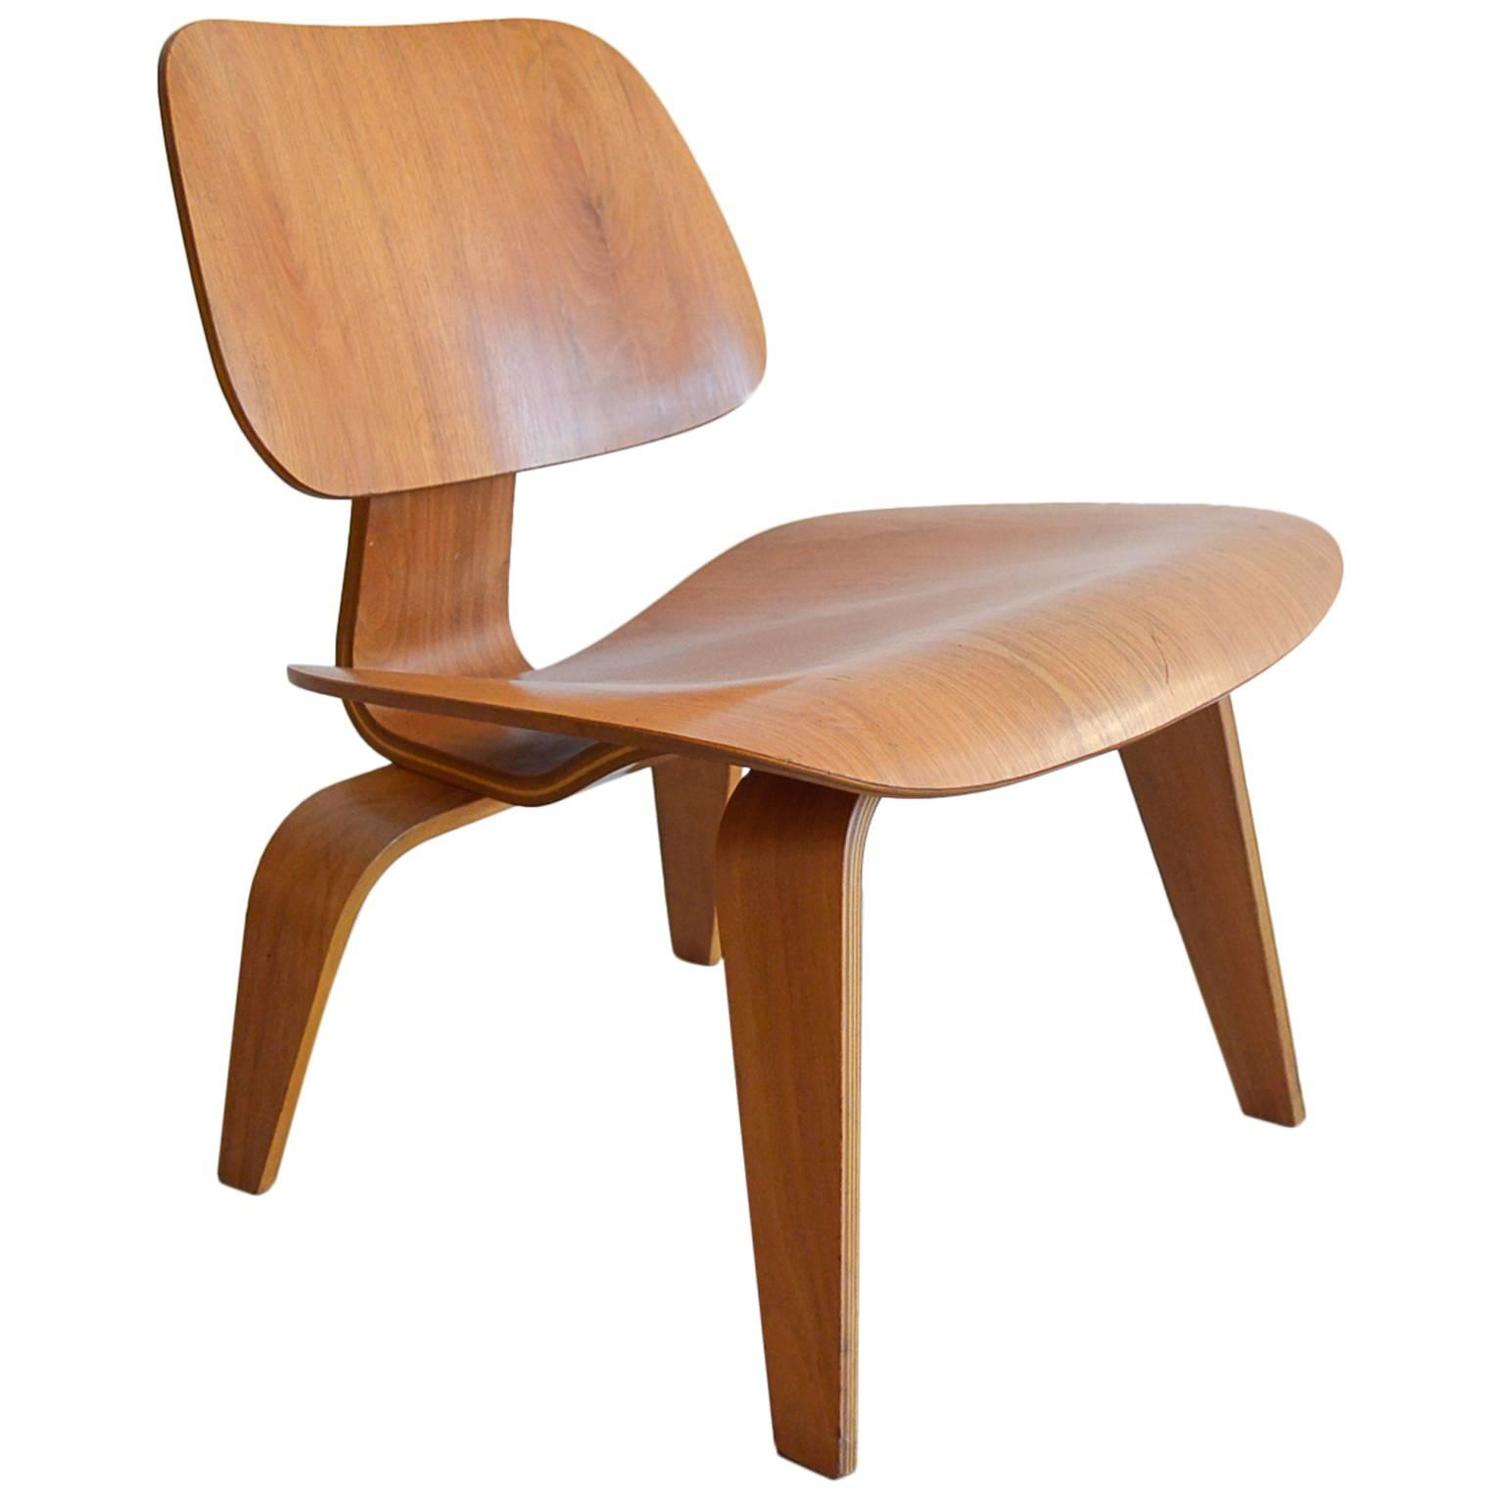 Bent Wood Chairs Early Eames Lcw Bentwood Chair For Sale At 1stdibs